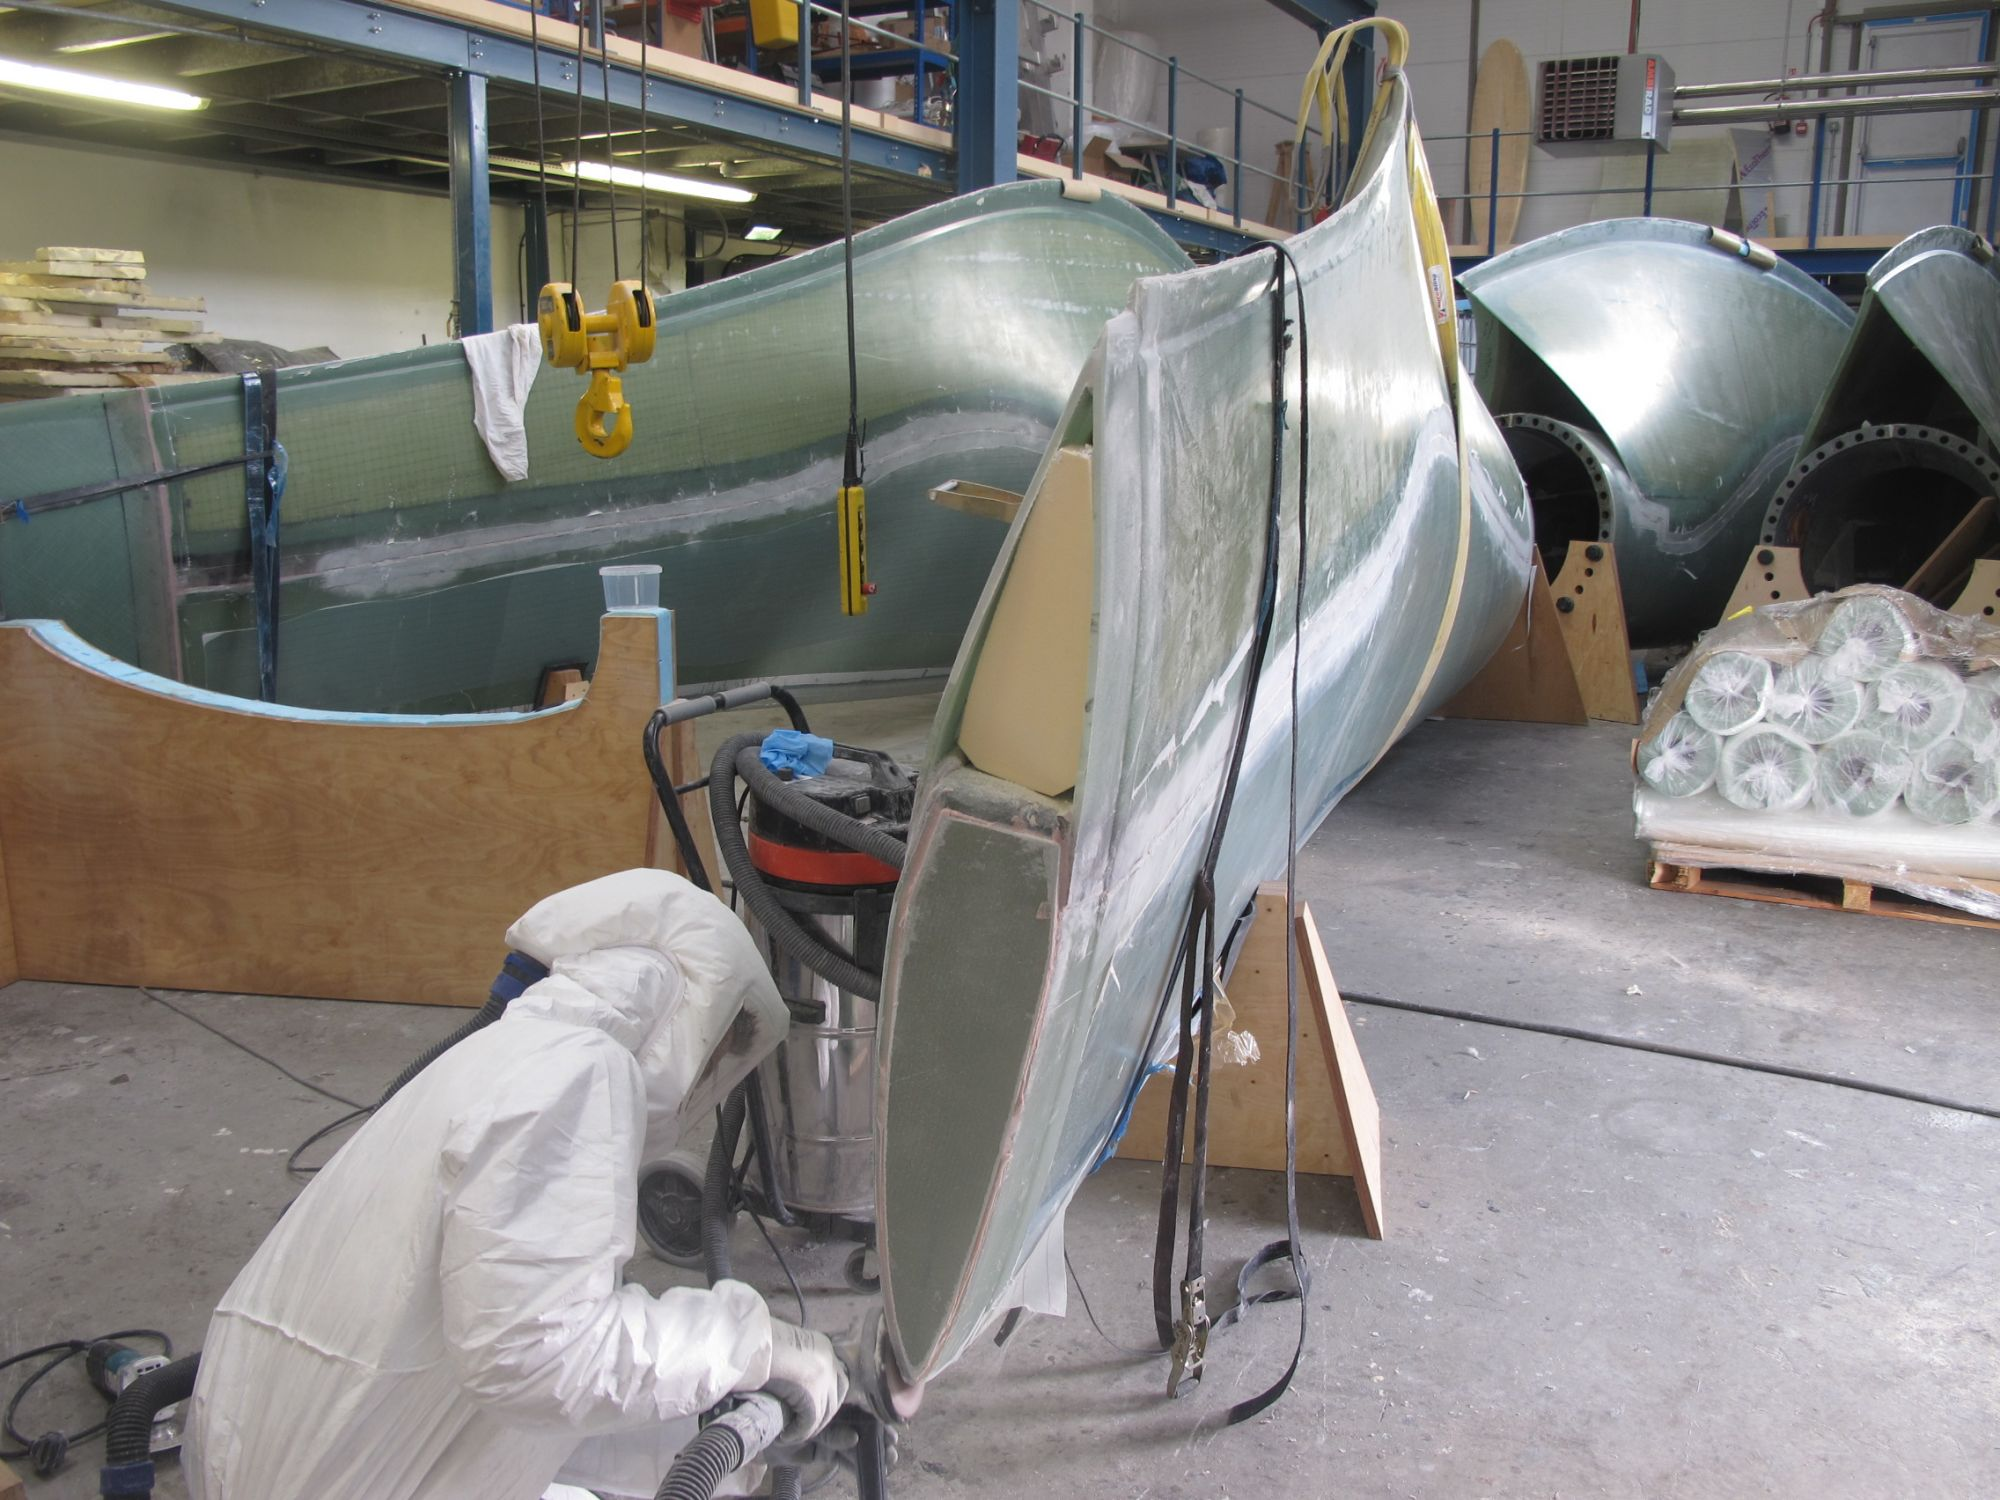 Tidal turbine blade under construction